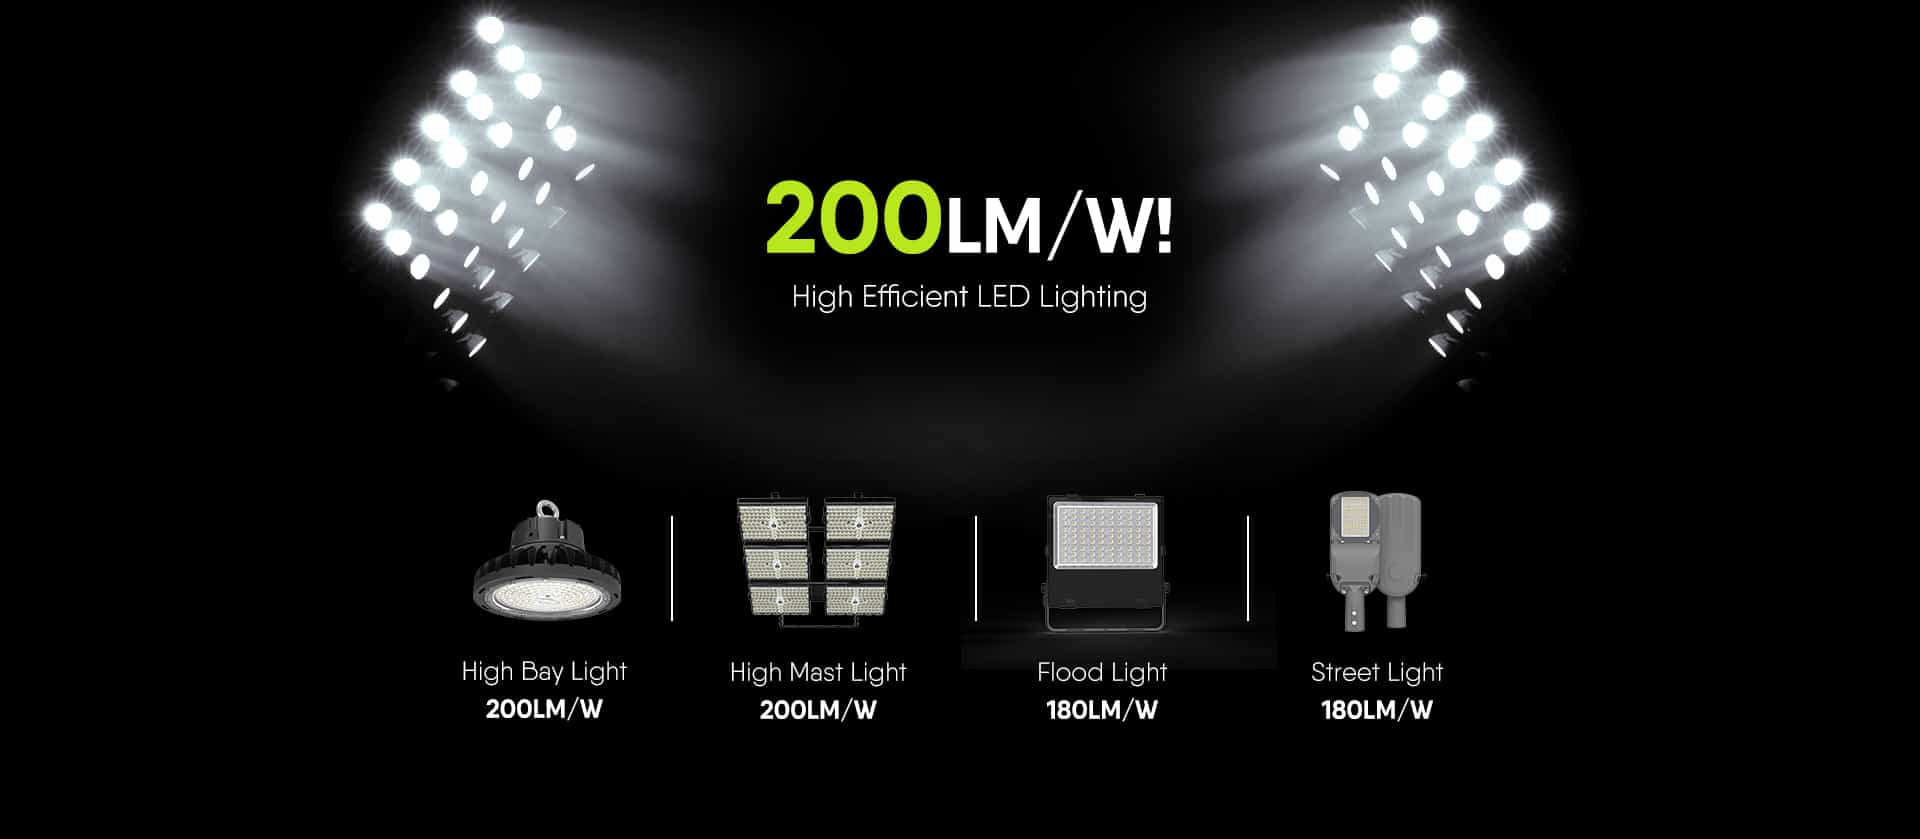 High Efficicncy LED Lighting Fixtures